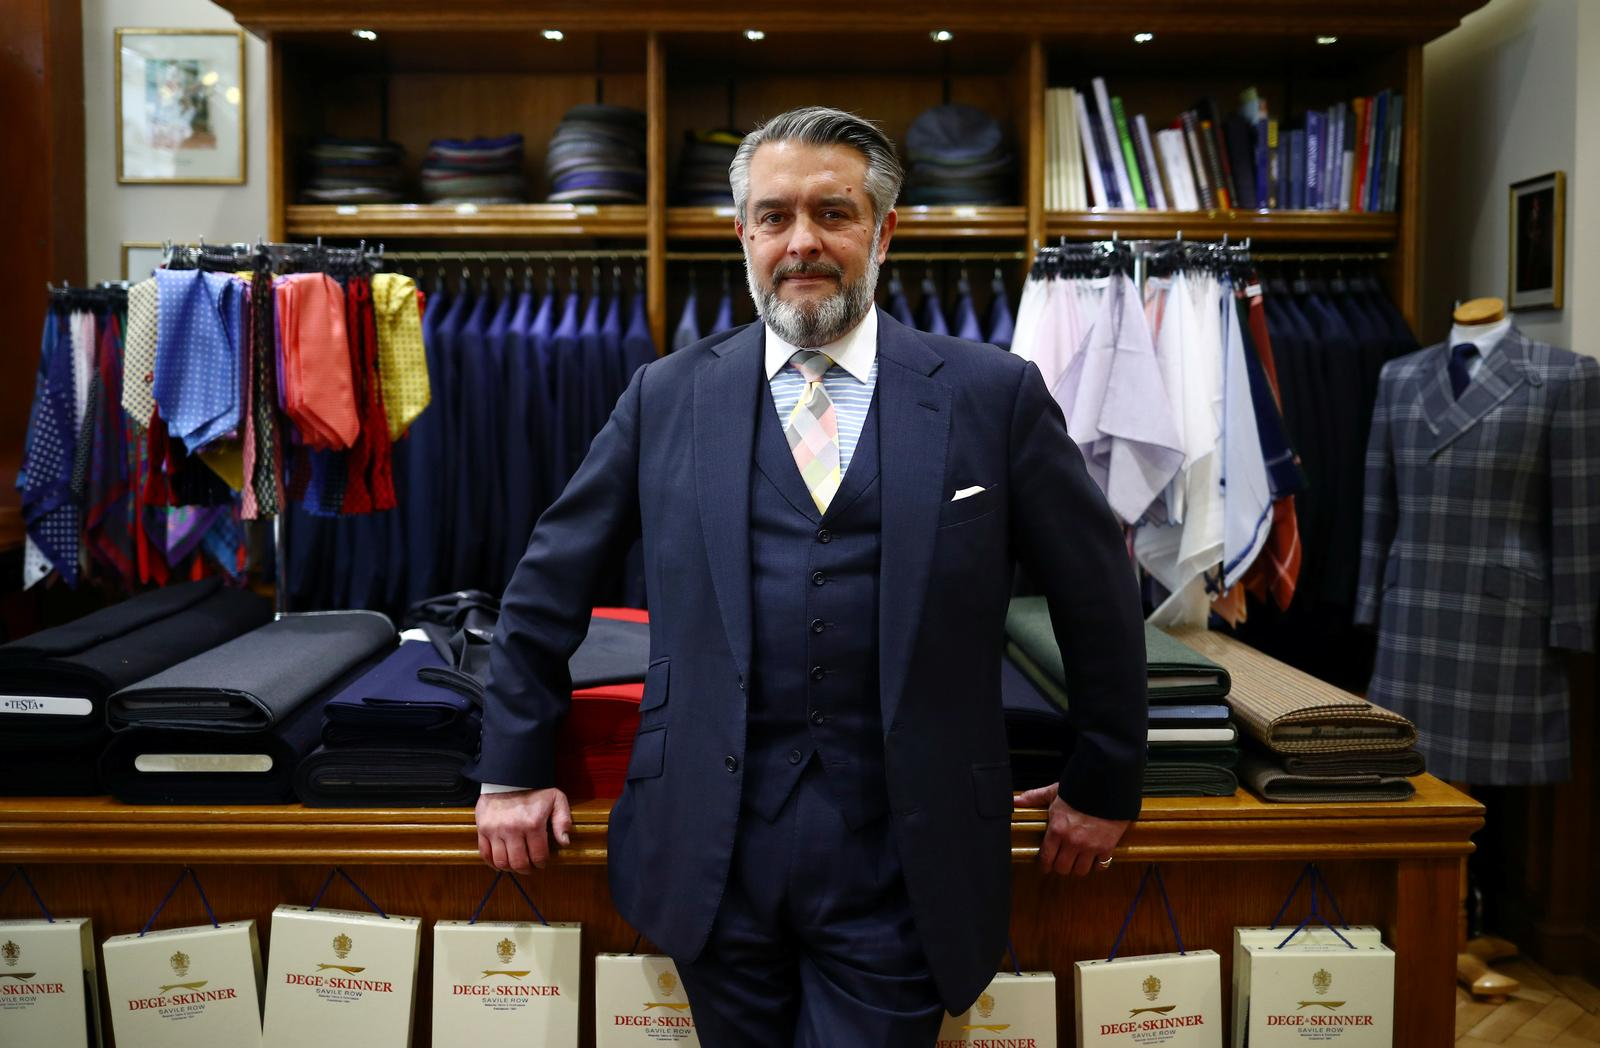 """Dege & Skinner Managing Director William Skinner poses for a portrait in the Dege & Skinner tailors on Savile Row, amid the coronavirus disease (COVID-19) outbreak, in London, Britain October 7, 2020. William Skinner is a fifth-generation tailor and the third to run the Savile Row shop Dege & Skinner. Established in 1865, Dege & Skinner is one of only two family-owned Savile Row firms. Its clients include businessmen, generals and royals including Prince Harry, who chose the brand for his wedding uniform. Business has been """"quite challenging,"""" but since reopening in June, the shop has seen """"quite a lot"""" of new customers. """"It's been on their bucket list for a long time,"""" Skinner said about some of his new customers, who think: """"if I get COVID, then I might never do this, so let's do it now'."""" """"There's a whole raft of attitudes out there … feedback we've had from some of our clients is 'we've had nothing to spend our money on over the last 3-6 months, so I'm going to buy a new suit'."""" Nevertheless, orders for the past six months are about one-quarter of what they would normally be. The company usually makes about 500-600 suits a year, starting at £5,500 each. Picture taken October 7, 2020. Photo: Reuters"""